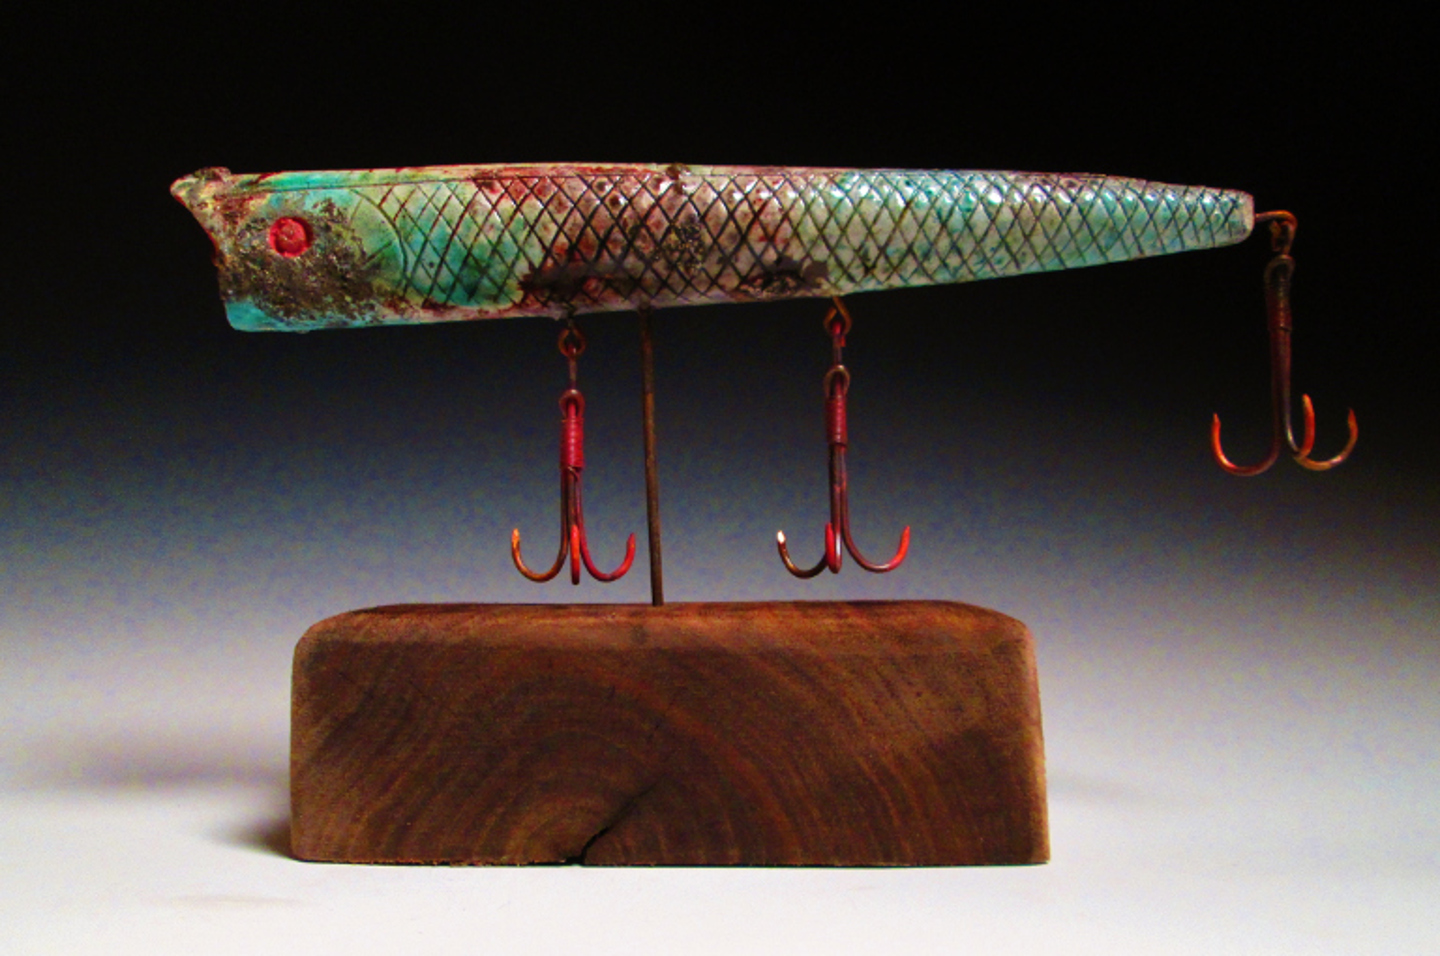 Mounted Lure  9x5x2.5  Ceramic and Reclaimed Material $250.JPG